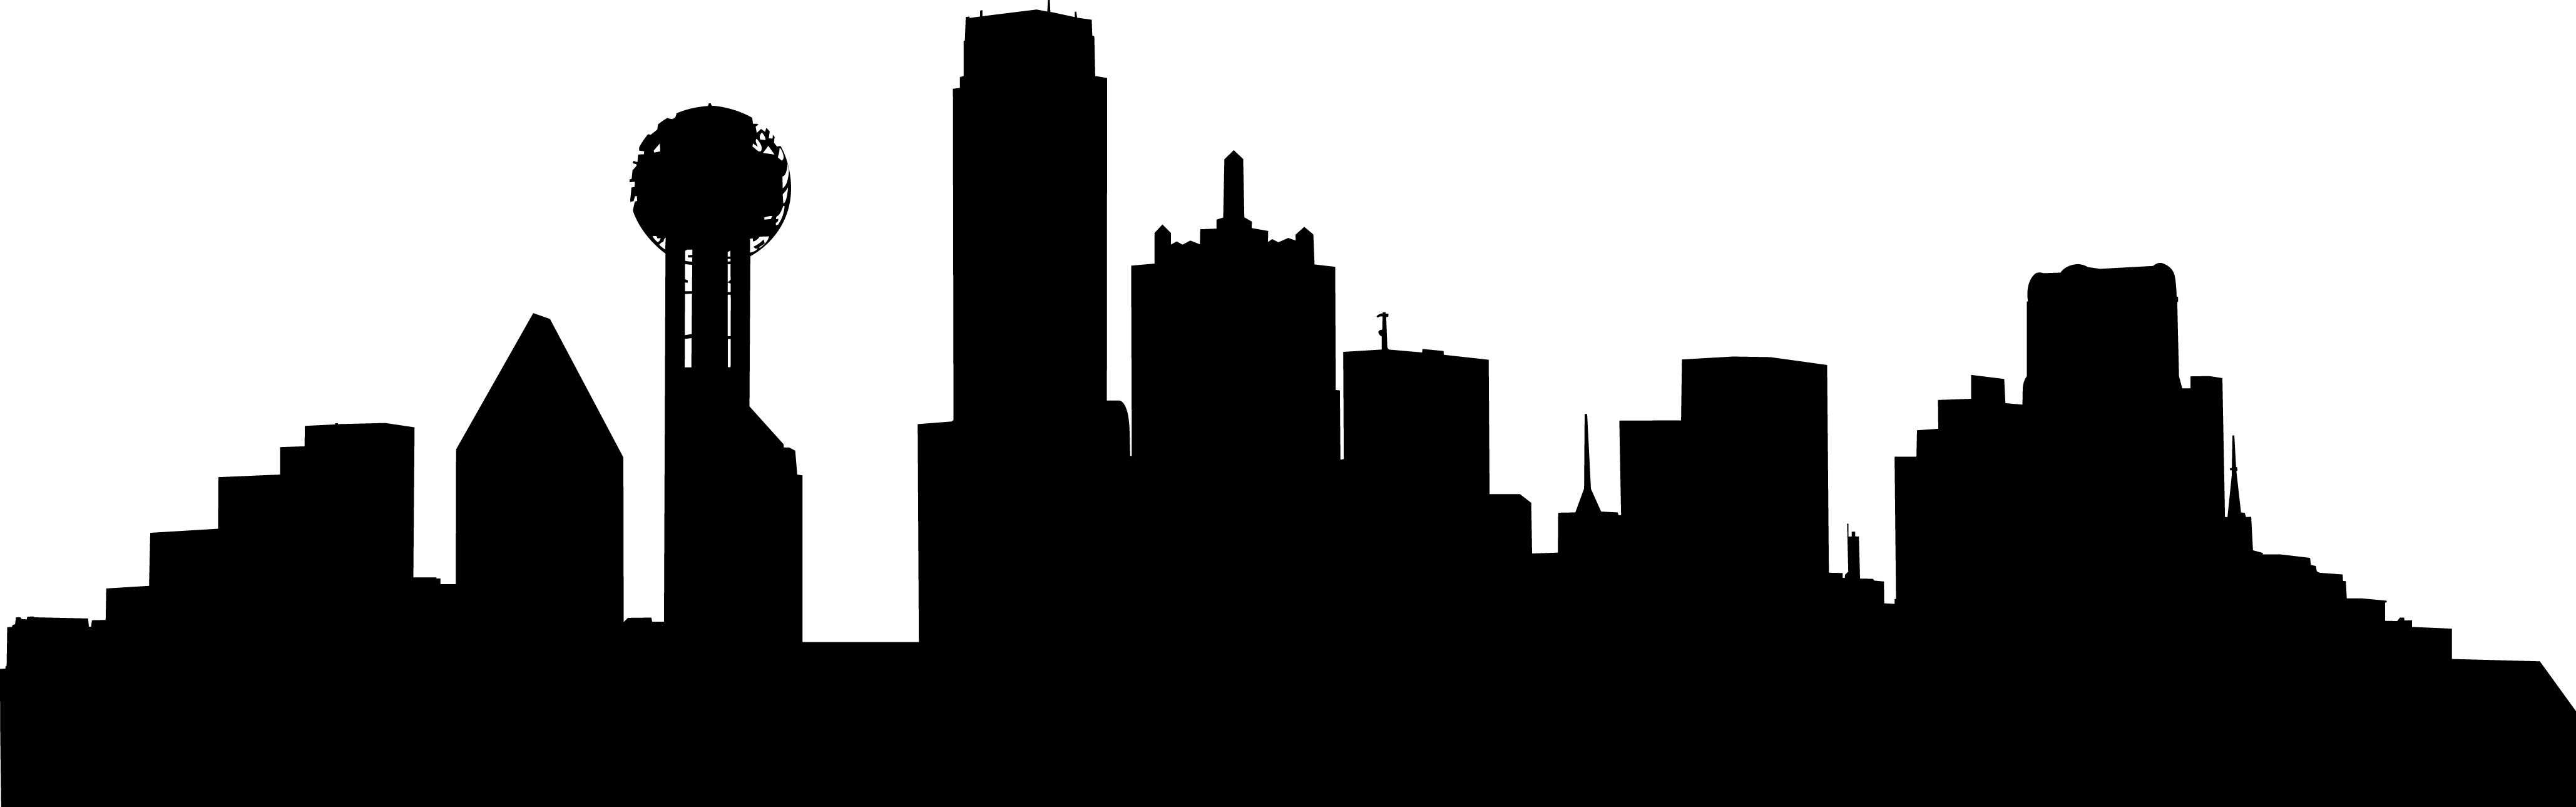 4116x1289 Skyline Clipart Dallas Skyline